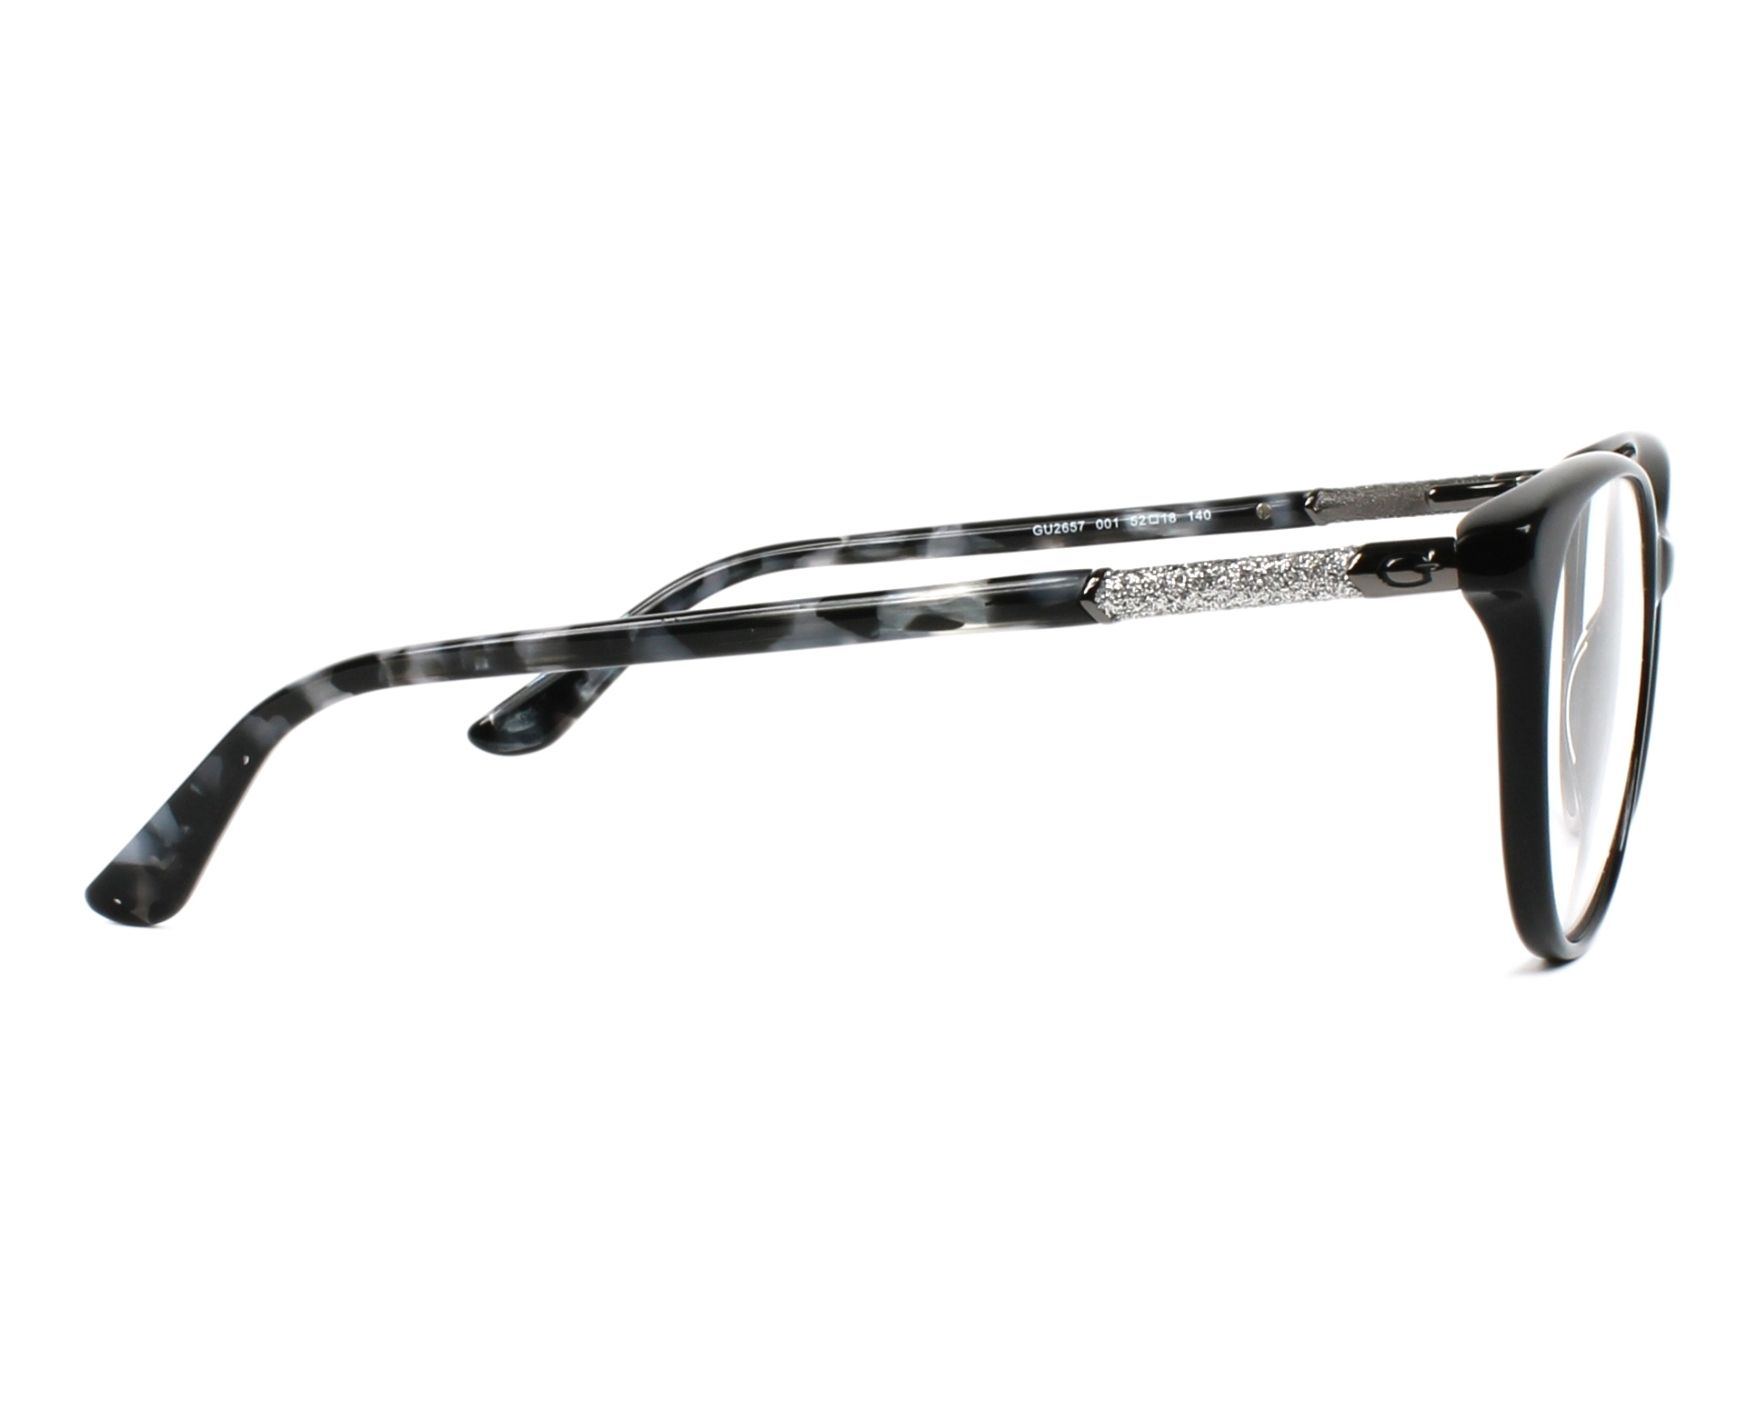 eyeglasses Guess GU-2657 001 52-18 Black Grey side view